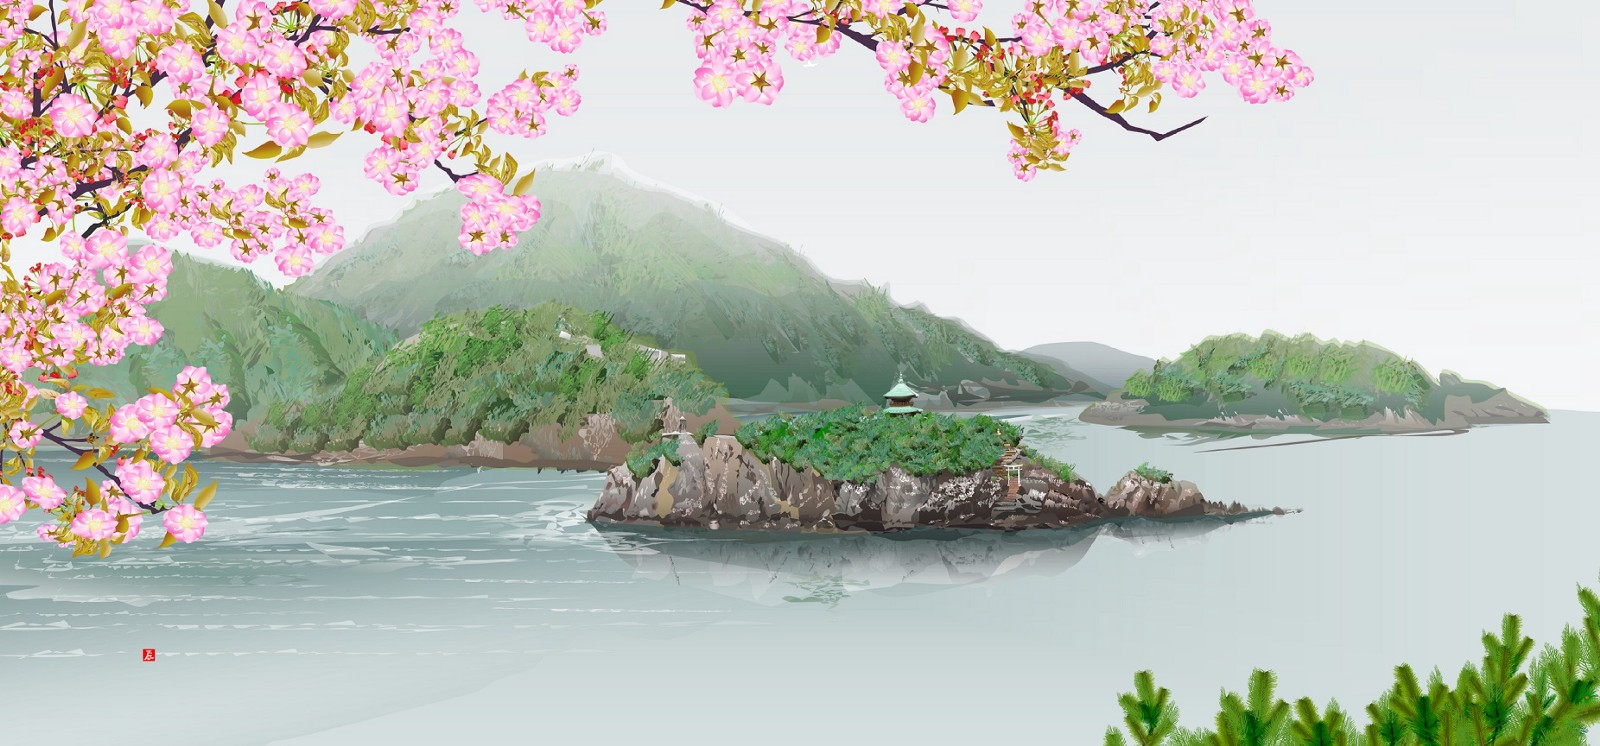 Landscape painting created with a spreadsheet tool